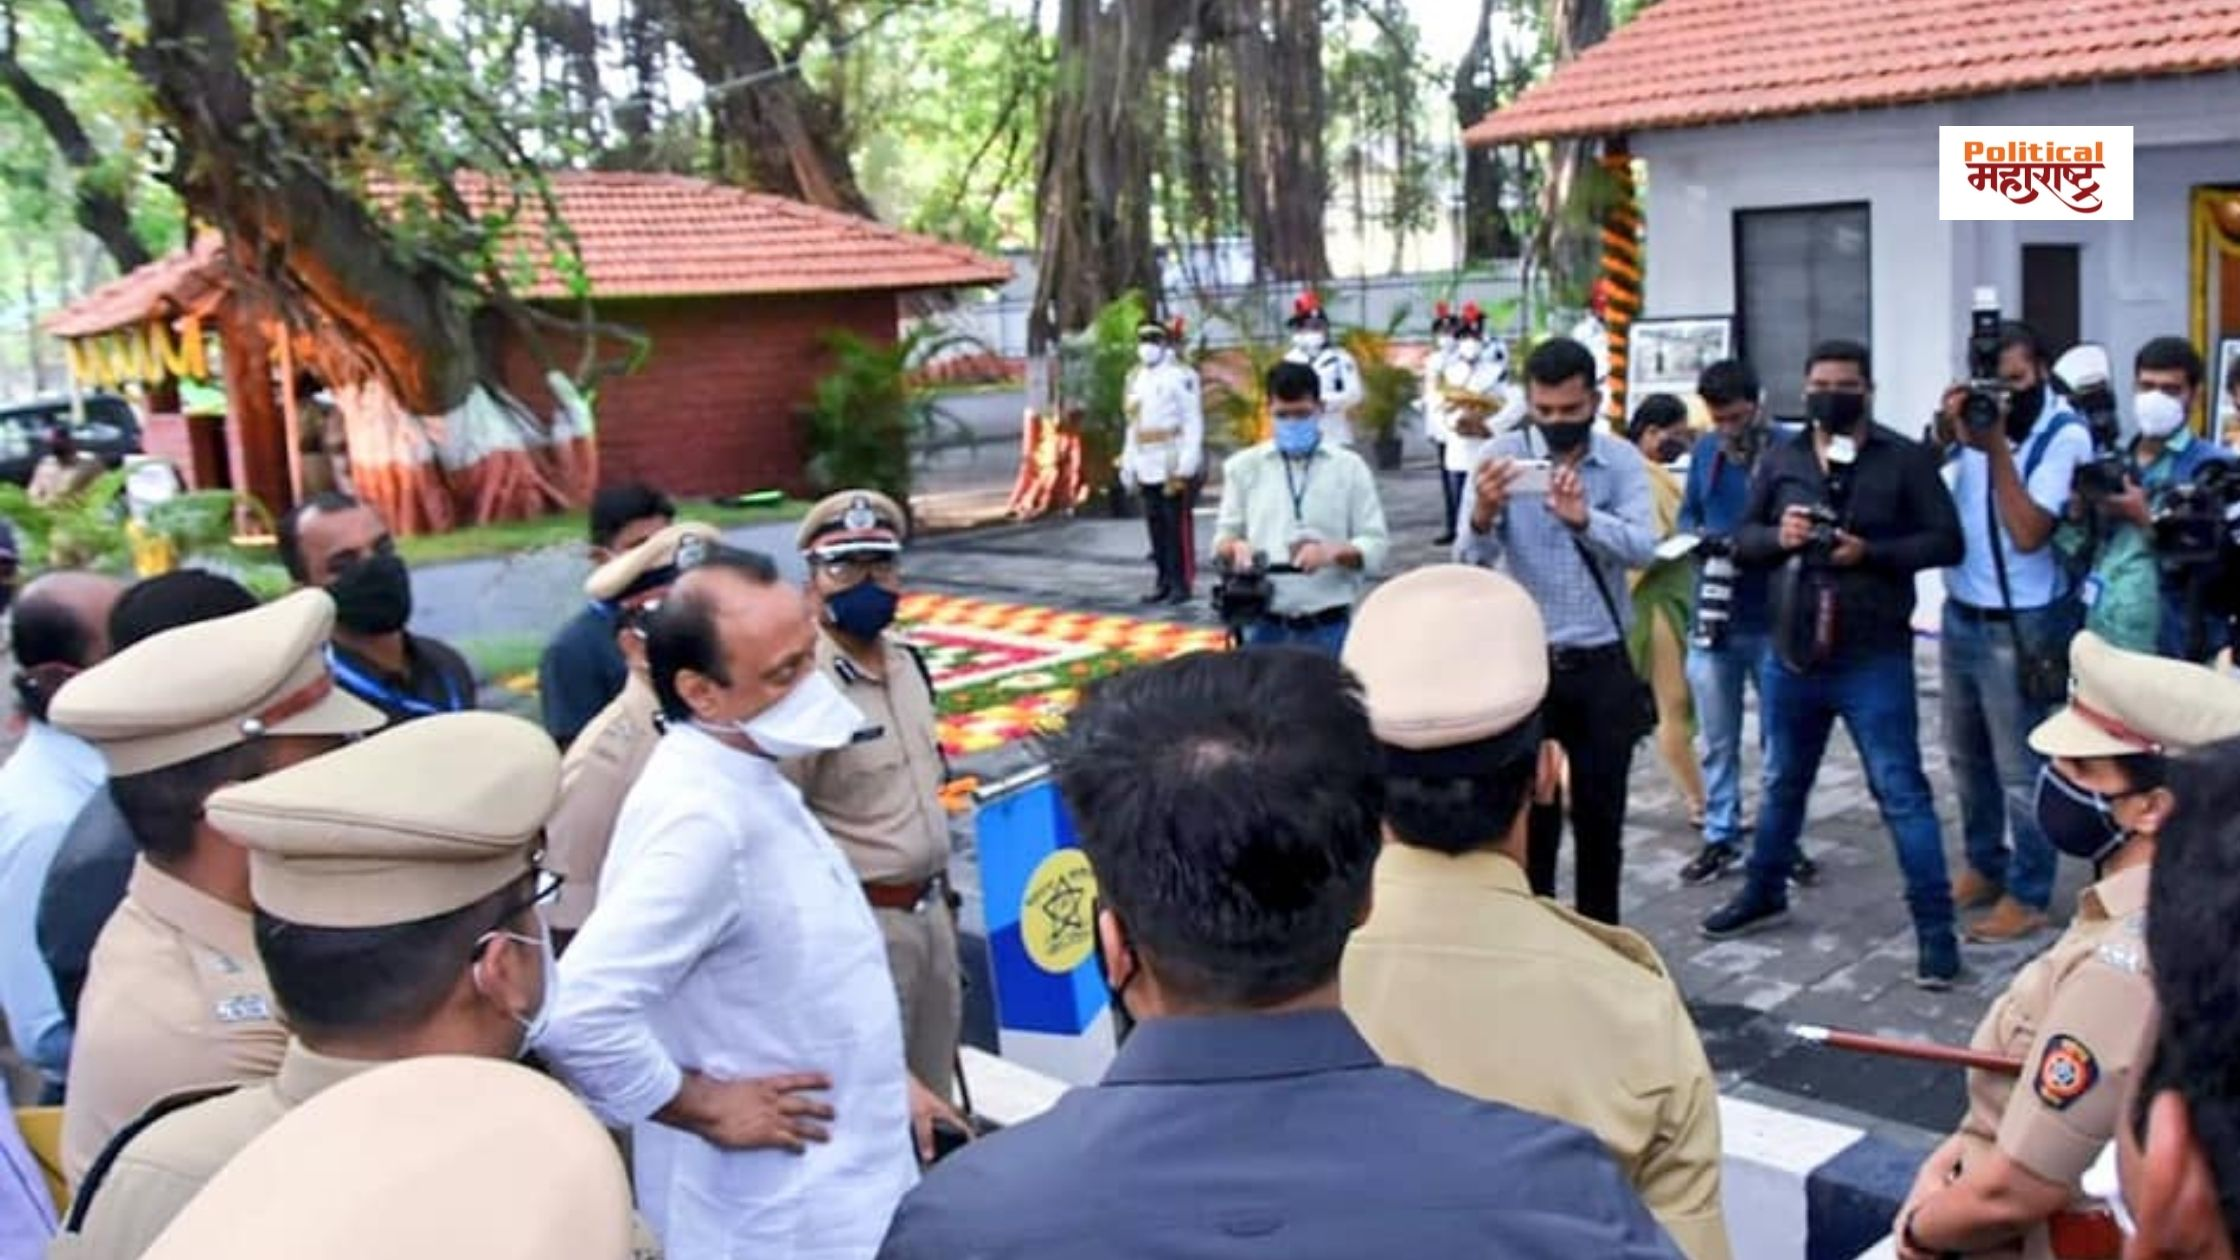 Ajit Pawar got angry with the commissioner along with the police construction contractor over the construction at the police headquarters